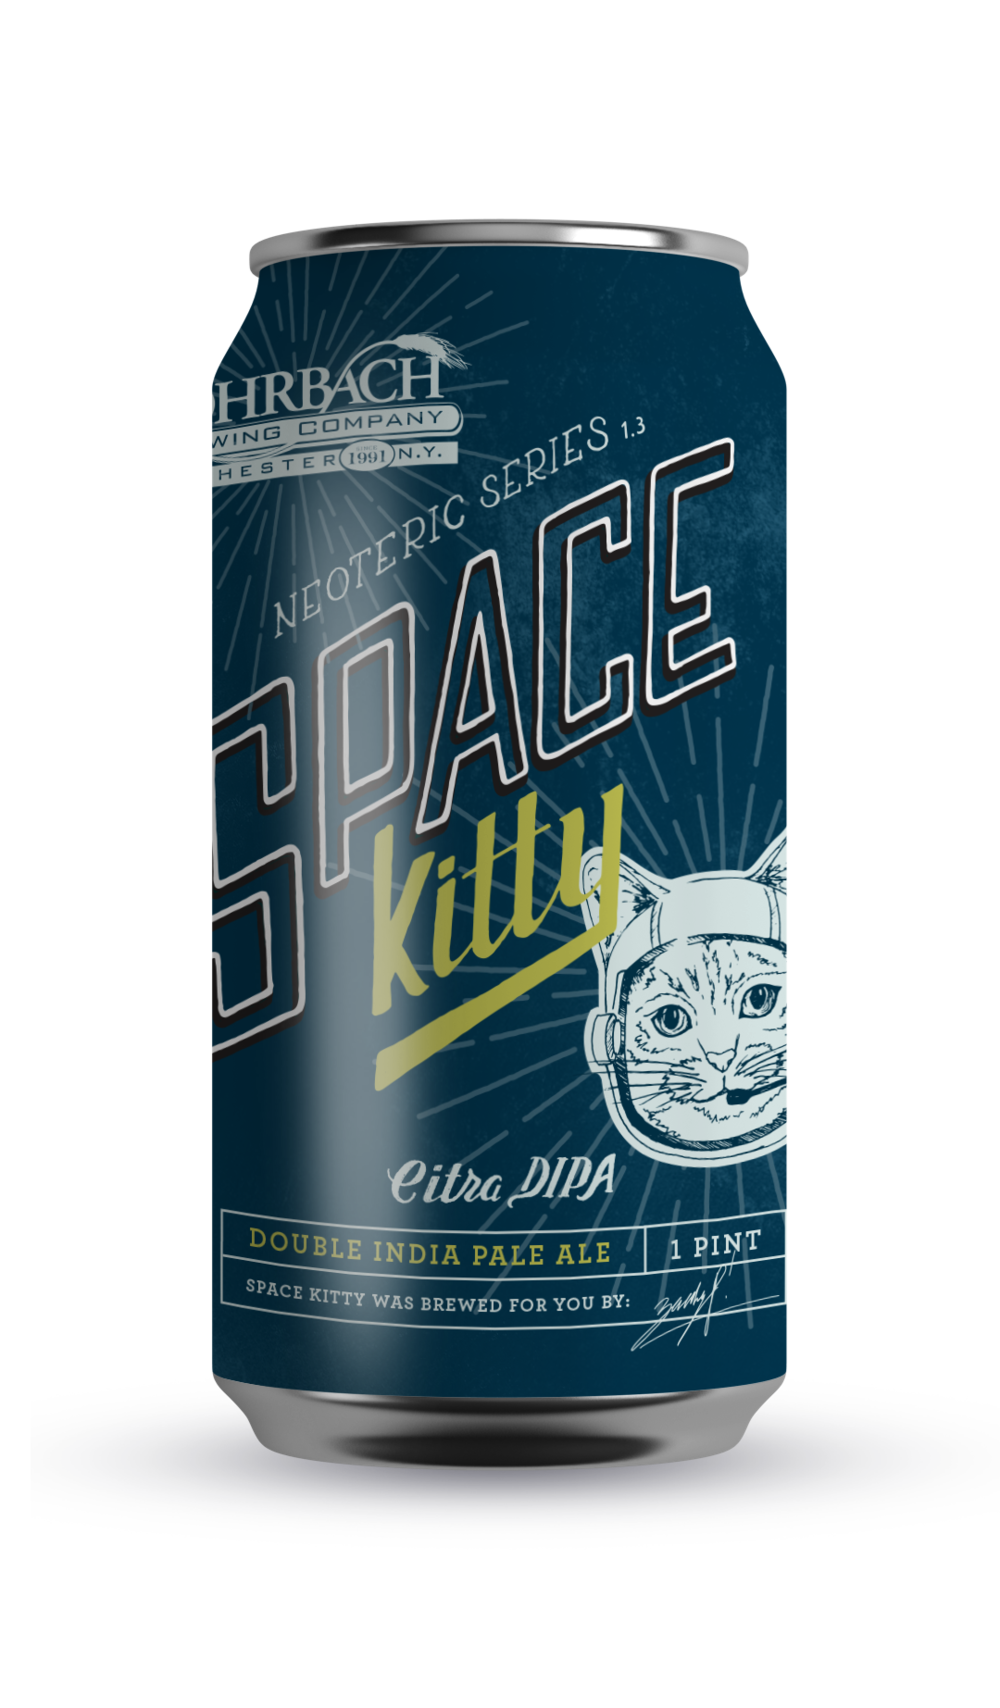 SPACE KITTY  This American Double IPA features a trio of rare hops, high in alpha acids and juicy oils, that mimic theWest Coast style we love so dearly. Do not age Space Kitty and please drink fresh.  ABV 8.4% | IBU 96